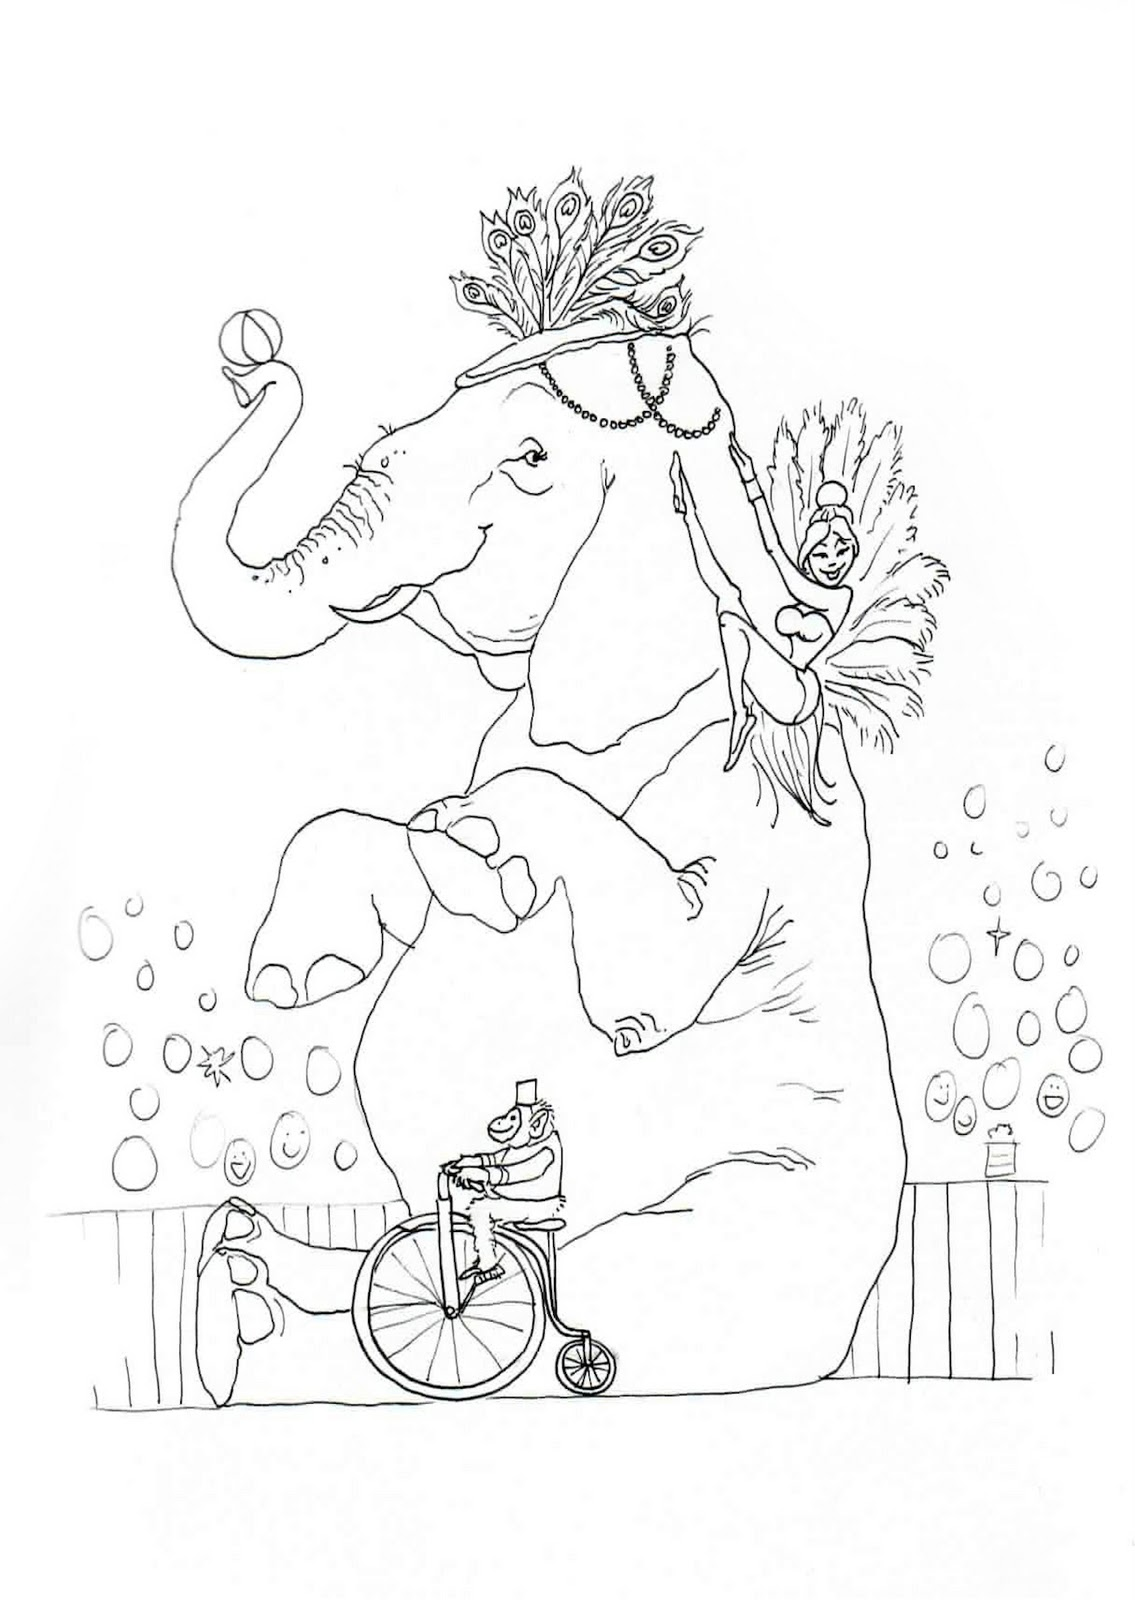 lovetheprimlook2 circus elephant coloring pages